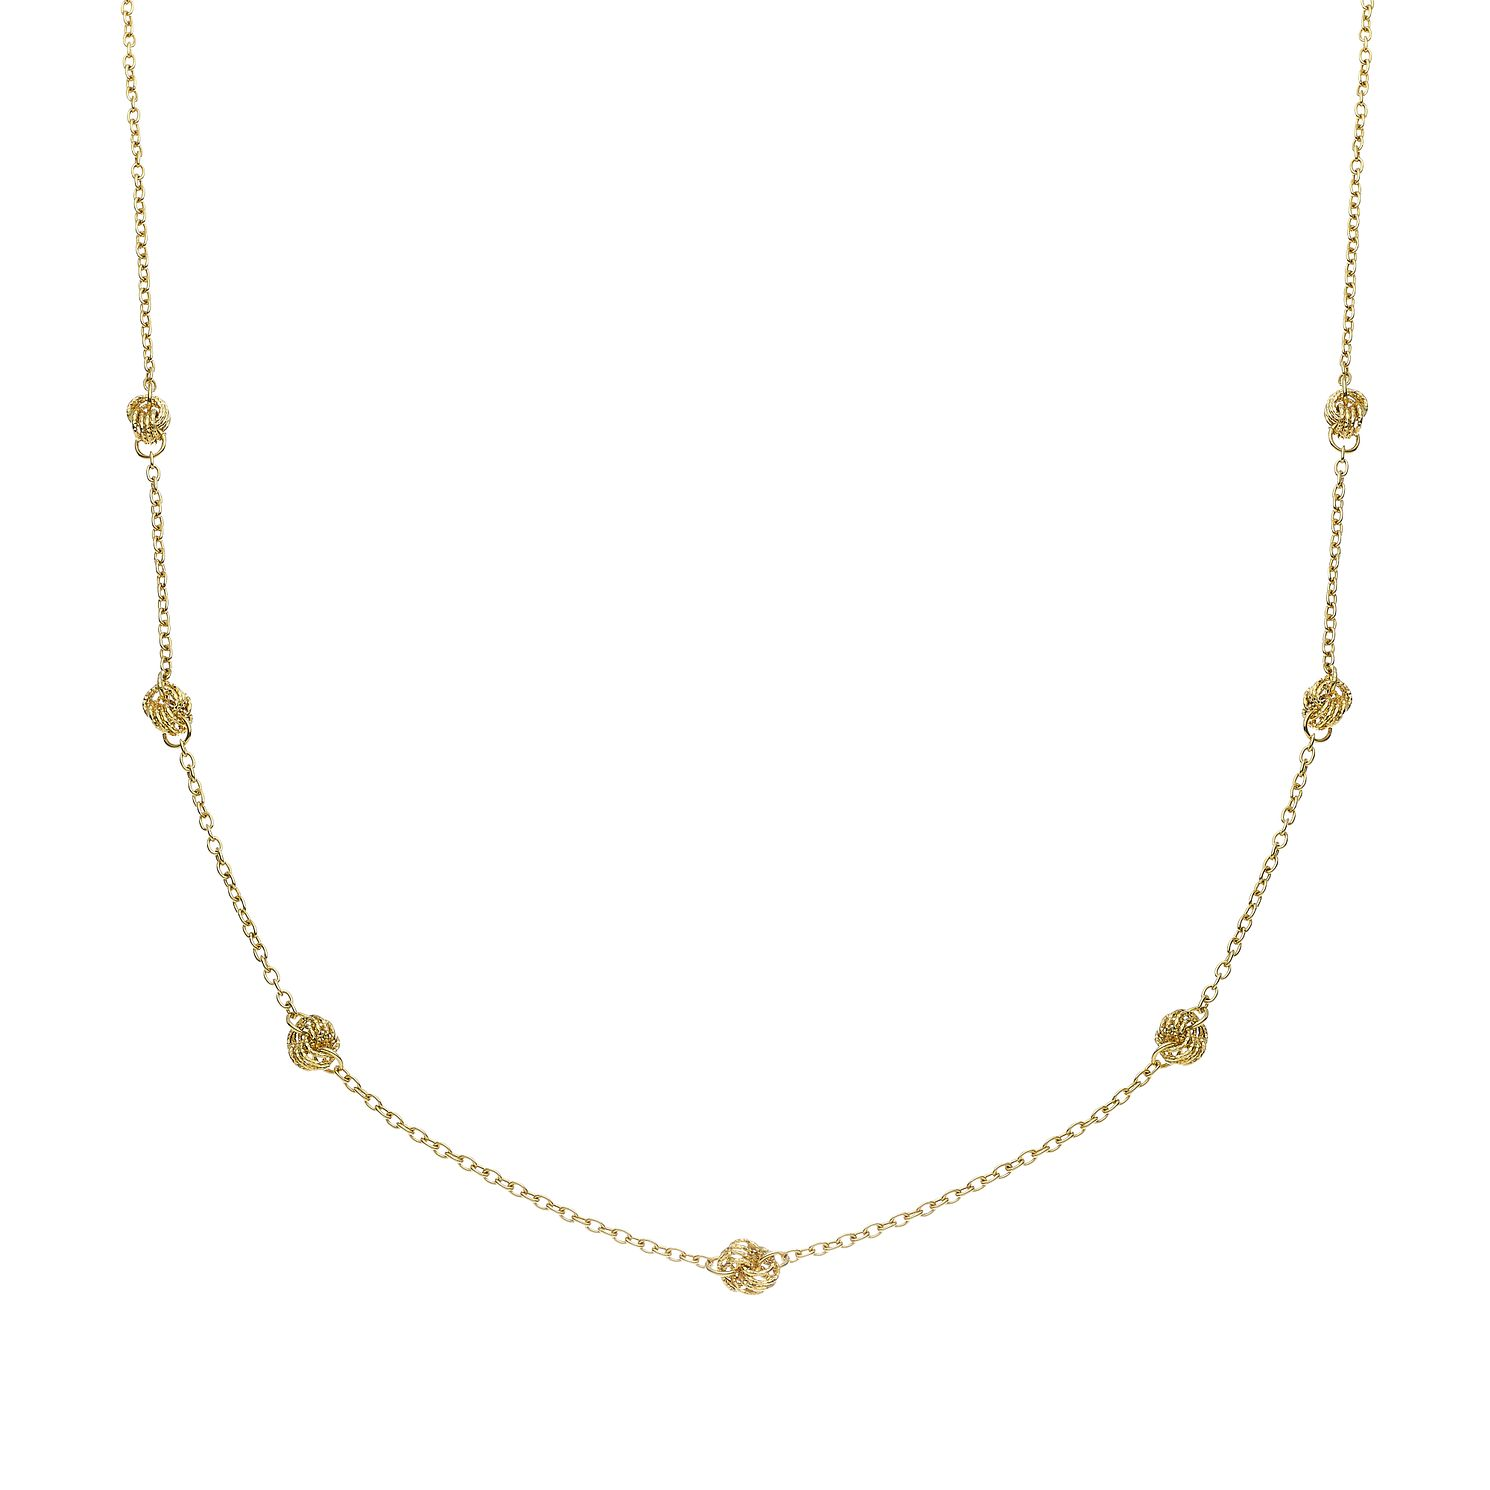 9ct Yellow Gold Knot Necklace - Product number 9663134